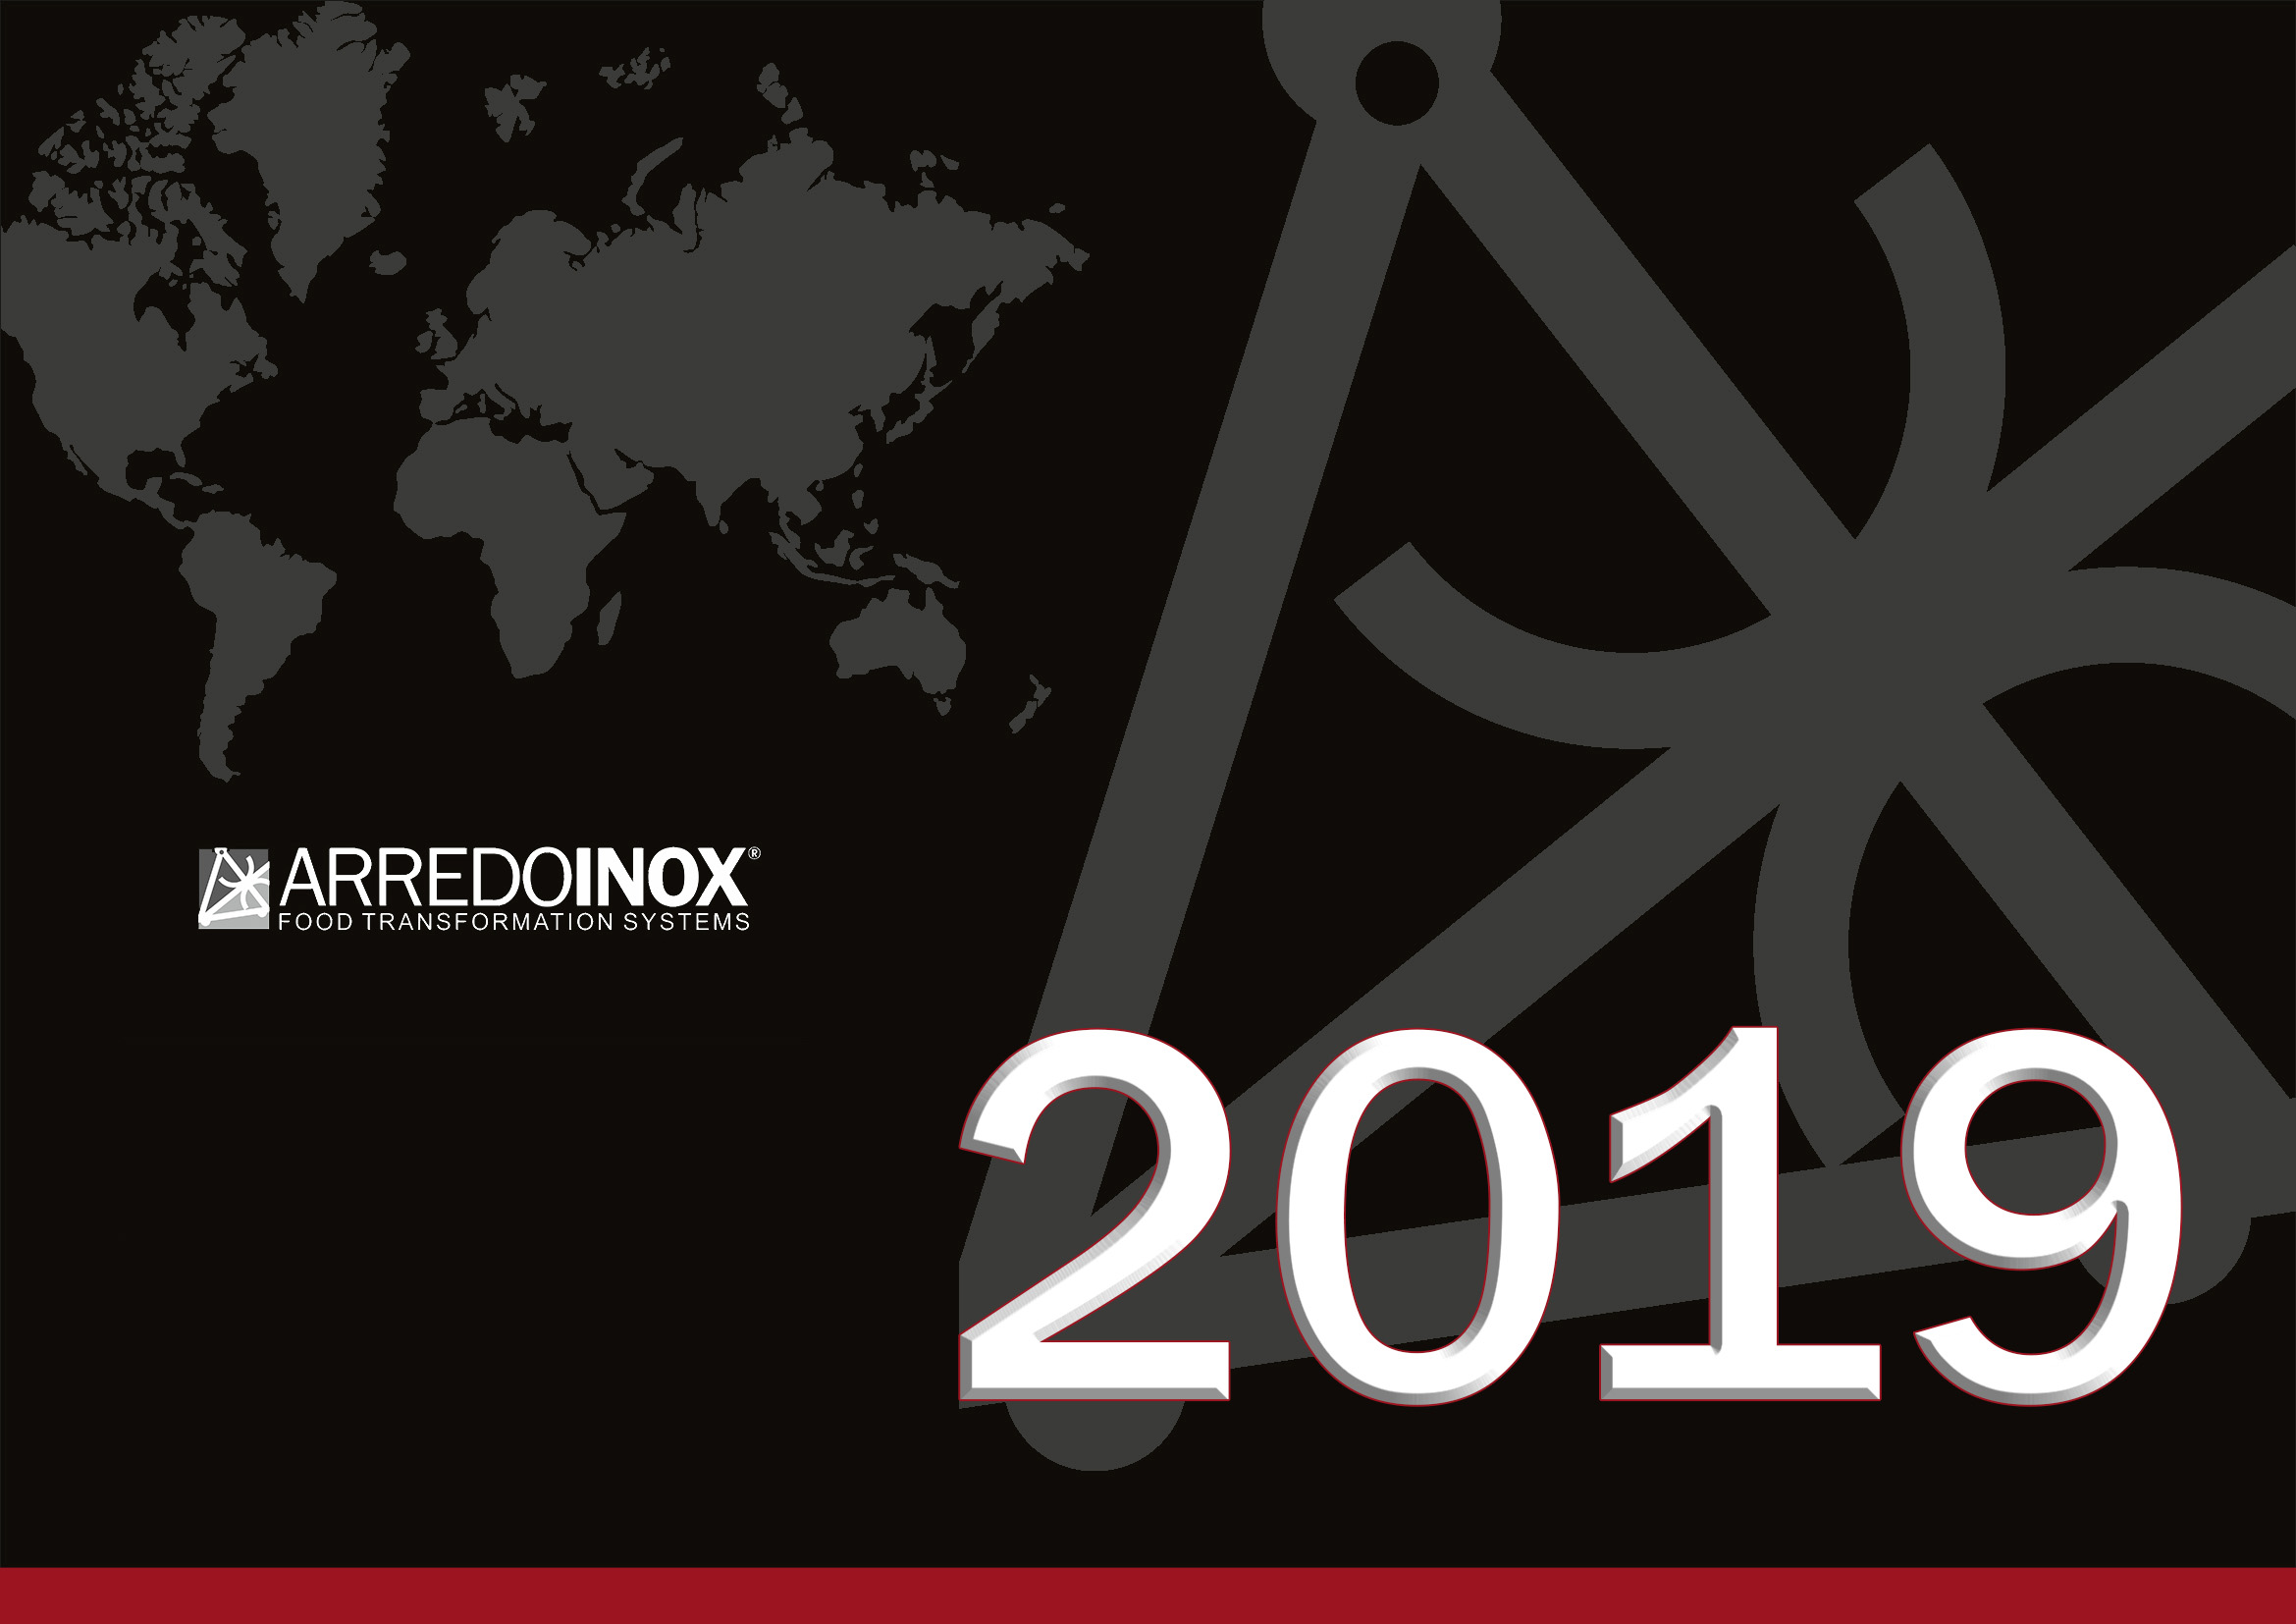 news and events of Arredo Inox